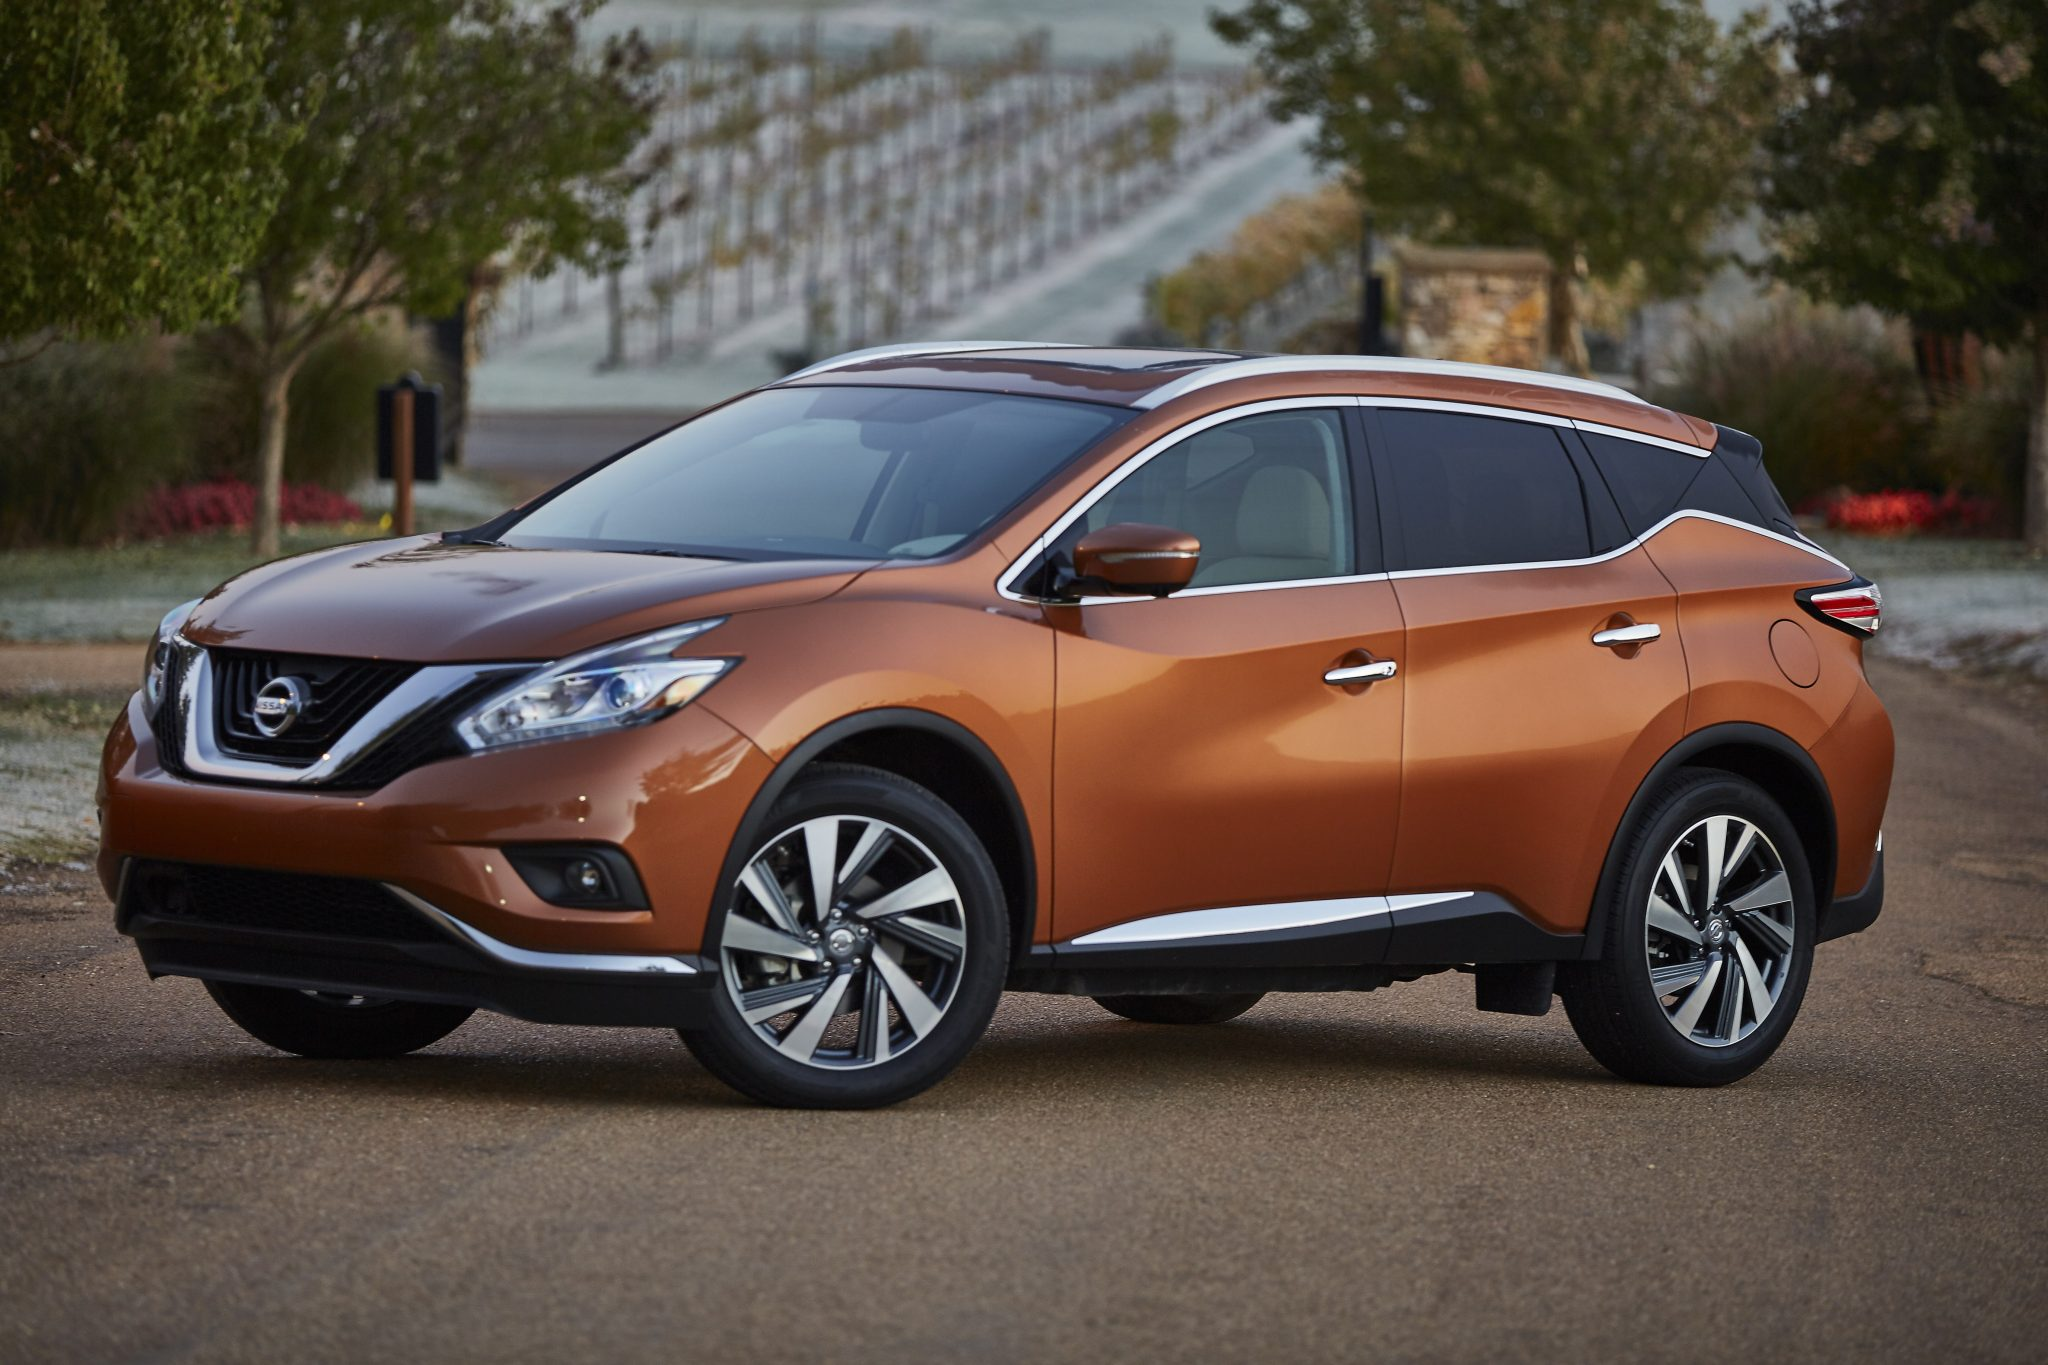 u s news names 2015 nissan murano best 2 row suv for families the news wheel. Black Bedroom Furniture Sets. Home Design Ideas